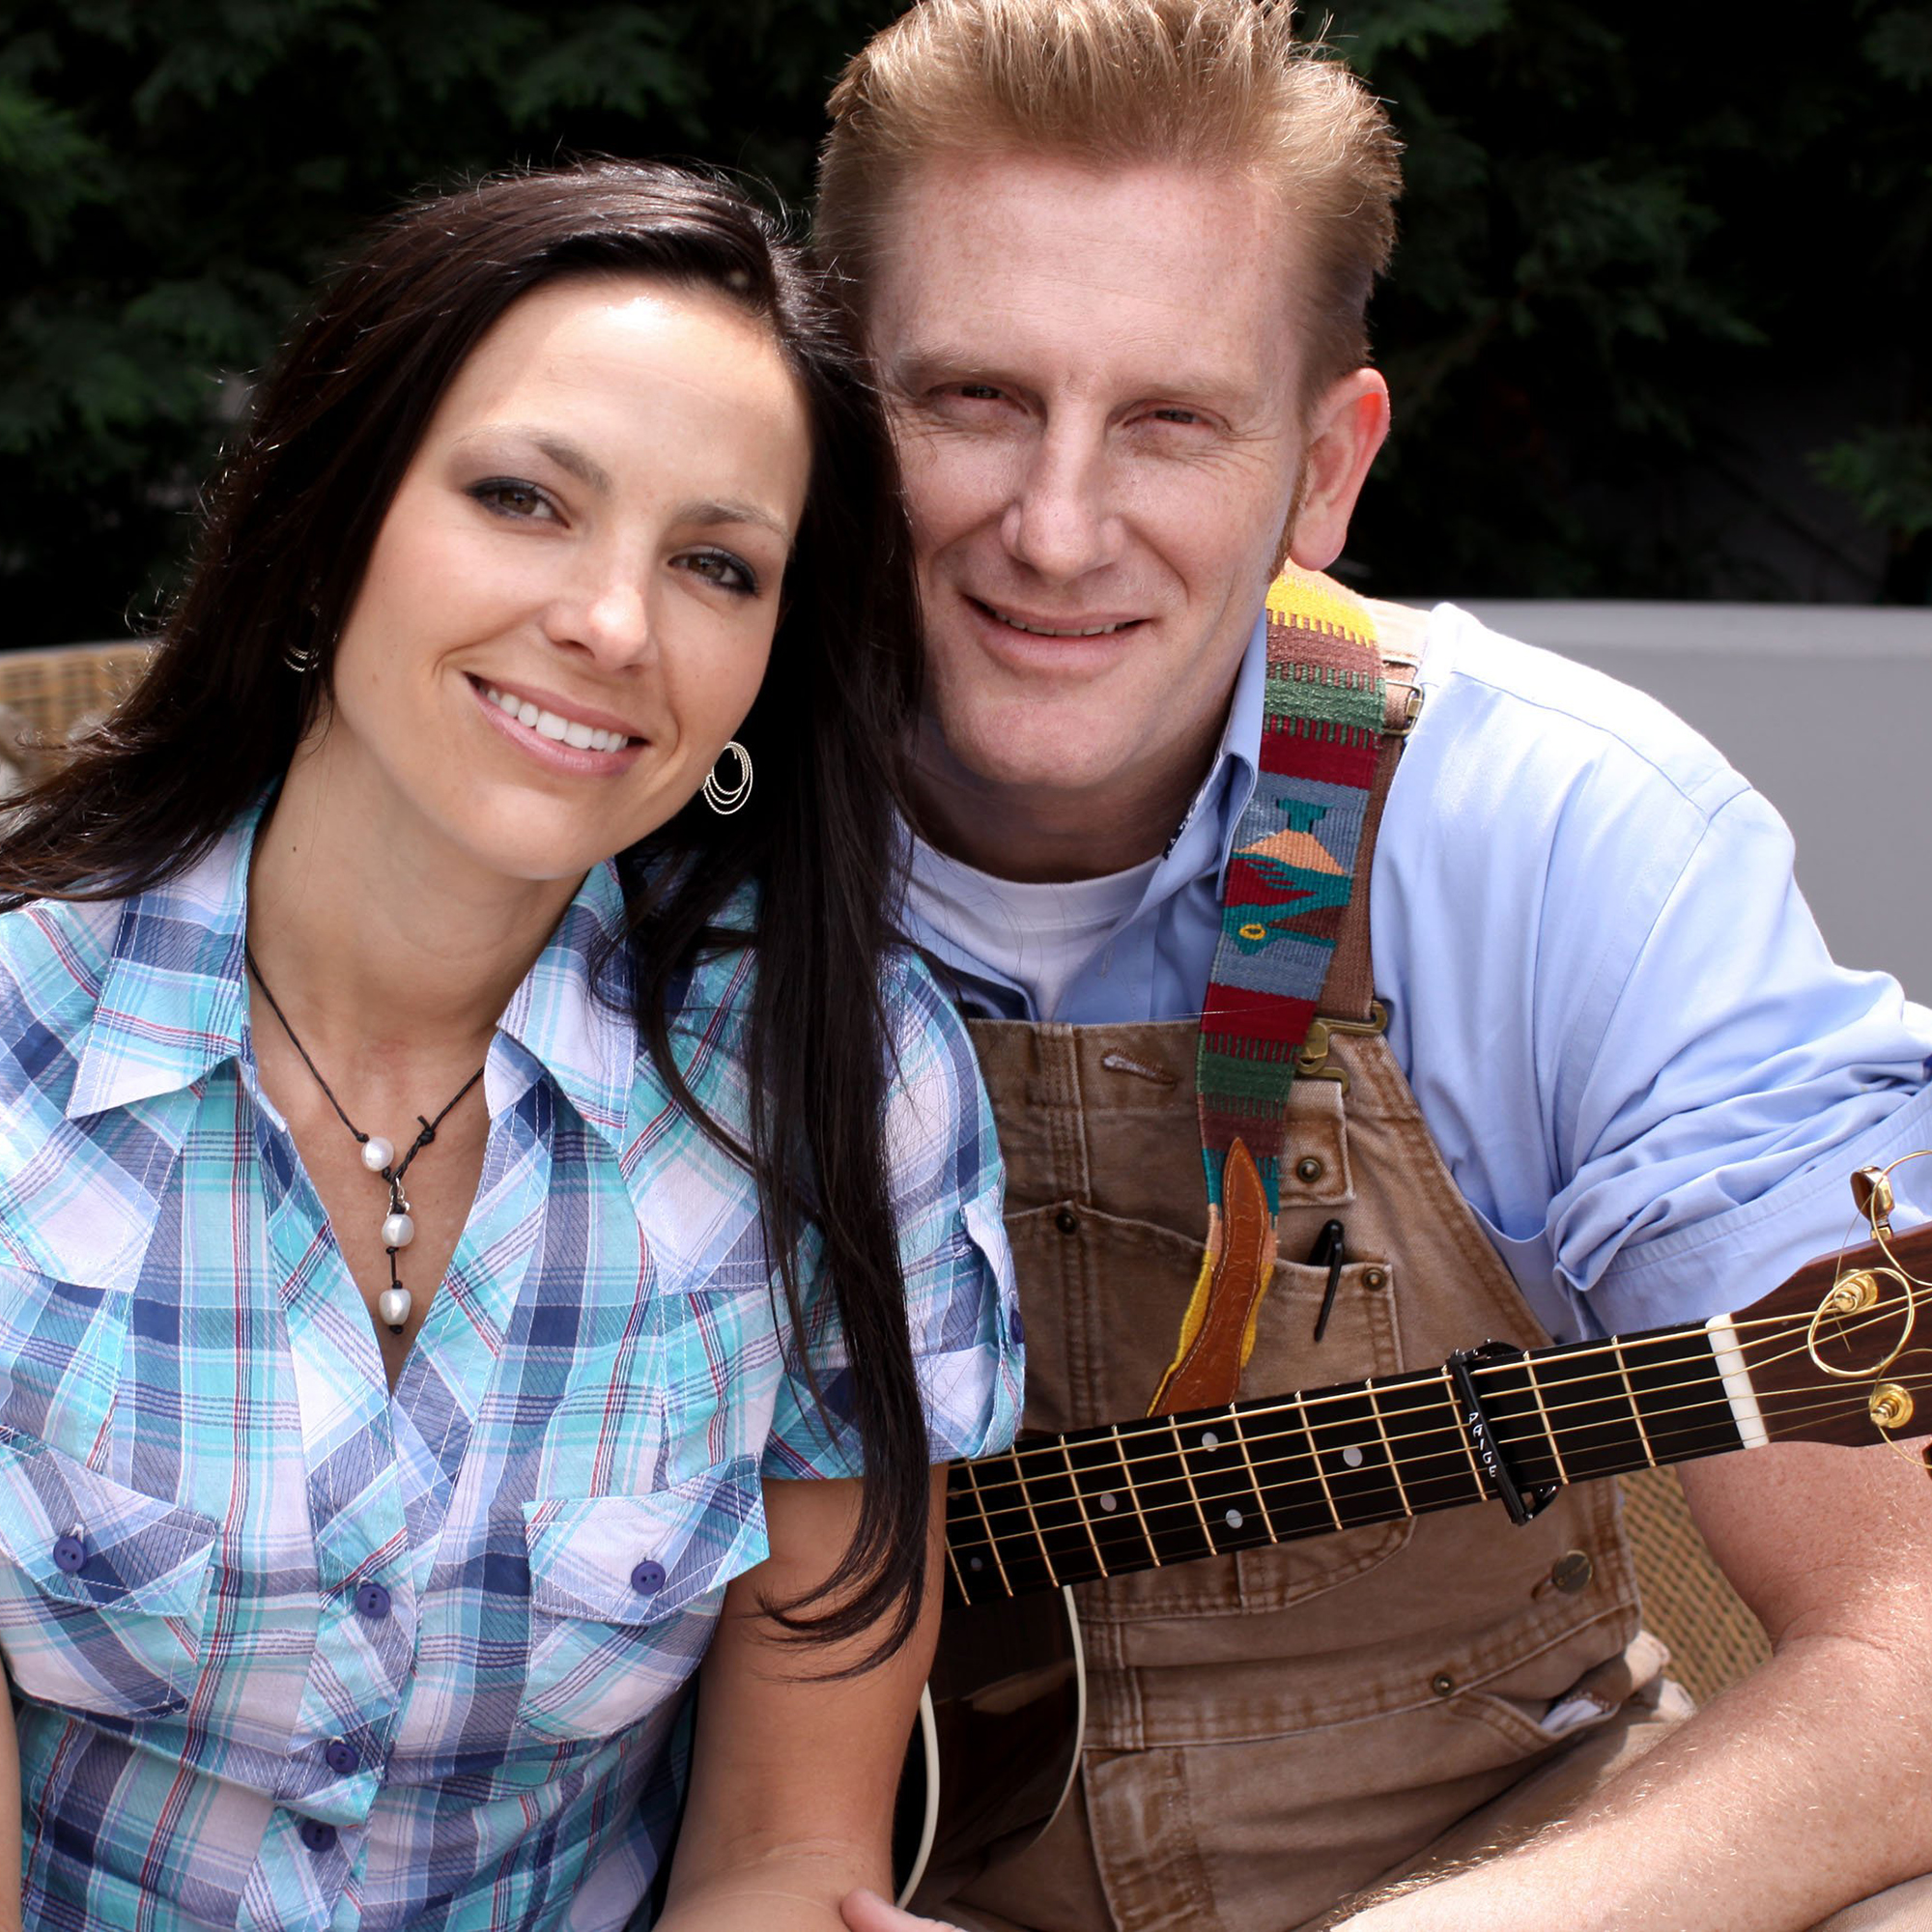 Rory Feek Says Daughter 6 Knows Mom Joey Feek S Voice On Radio After joey's hair began to fall out, rory shaved her head for her. today show